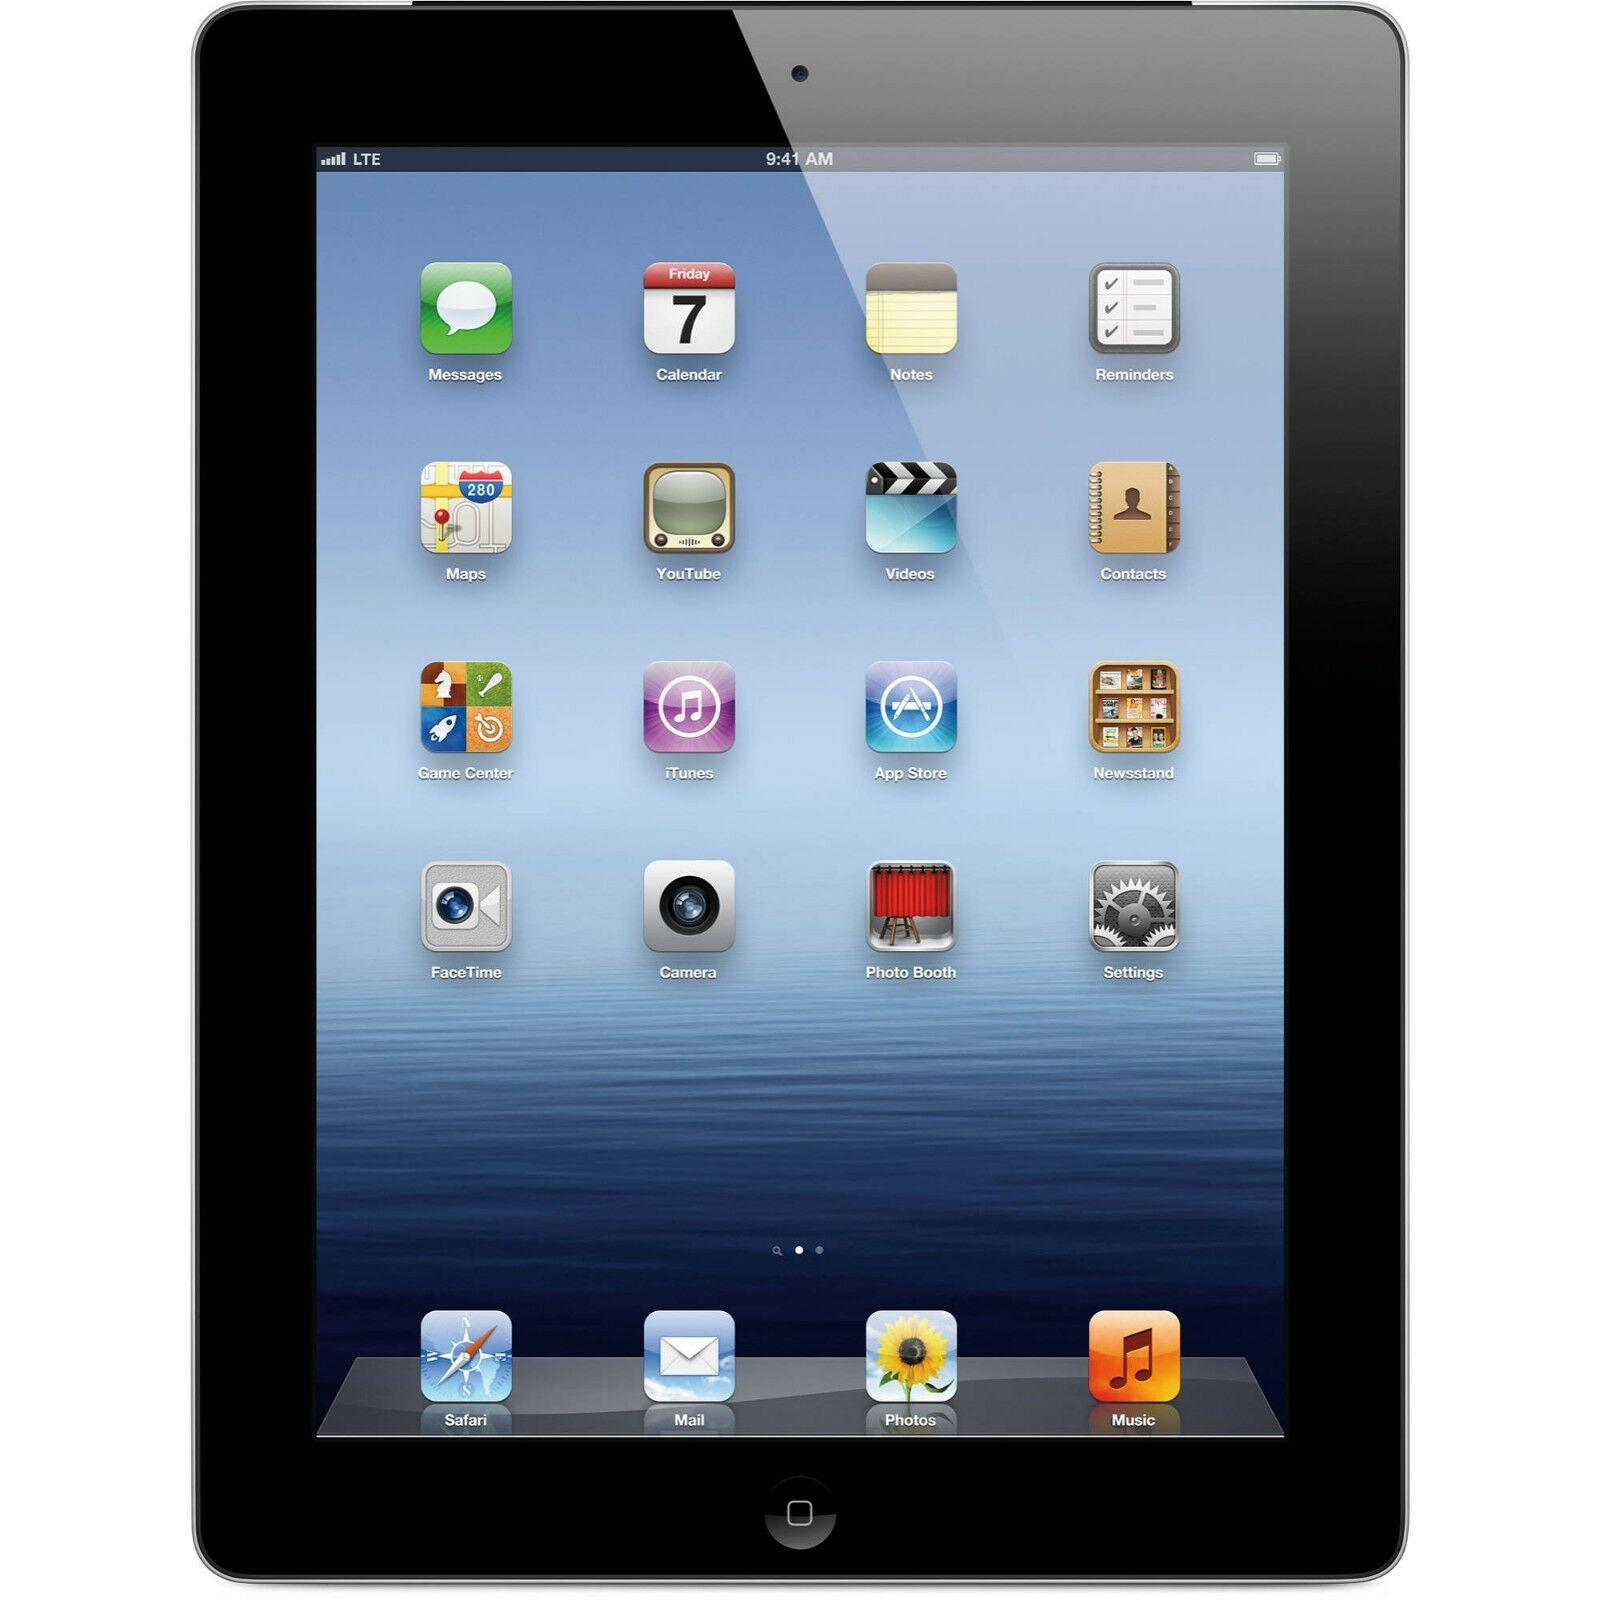 BUNDLE Apple iPad 2 16GB, Wi-Fi, 9.7in - Black - GRADE A - DAILY DEAL (R)